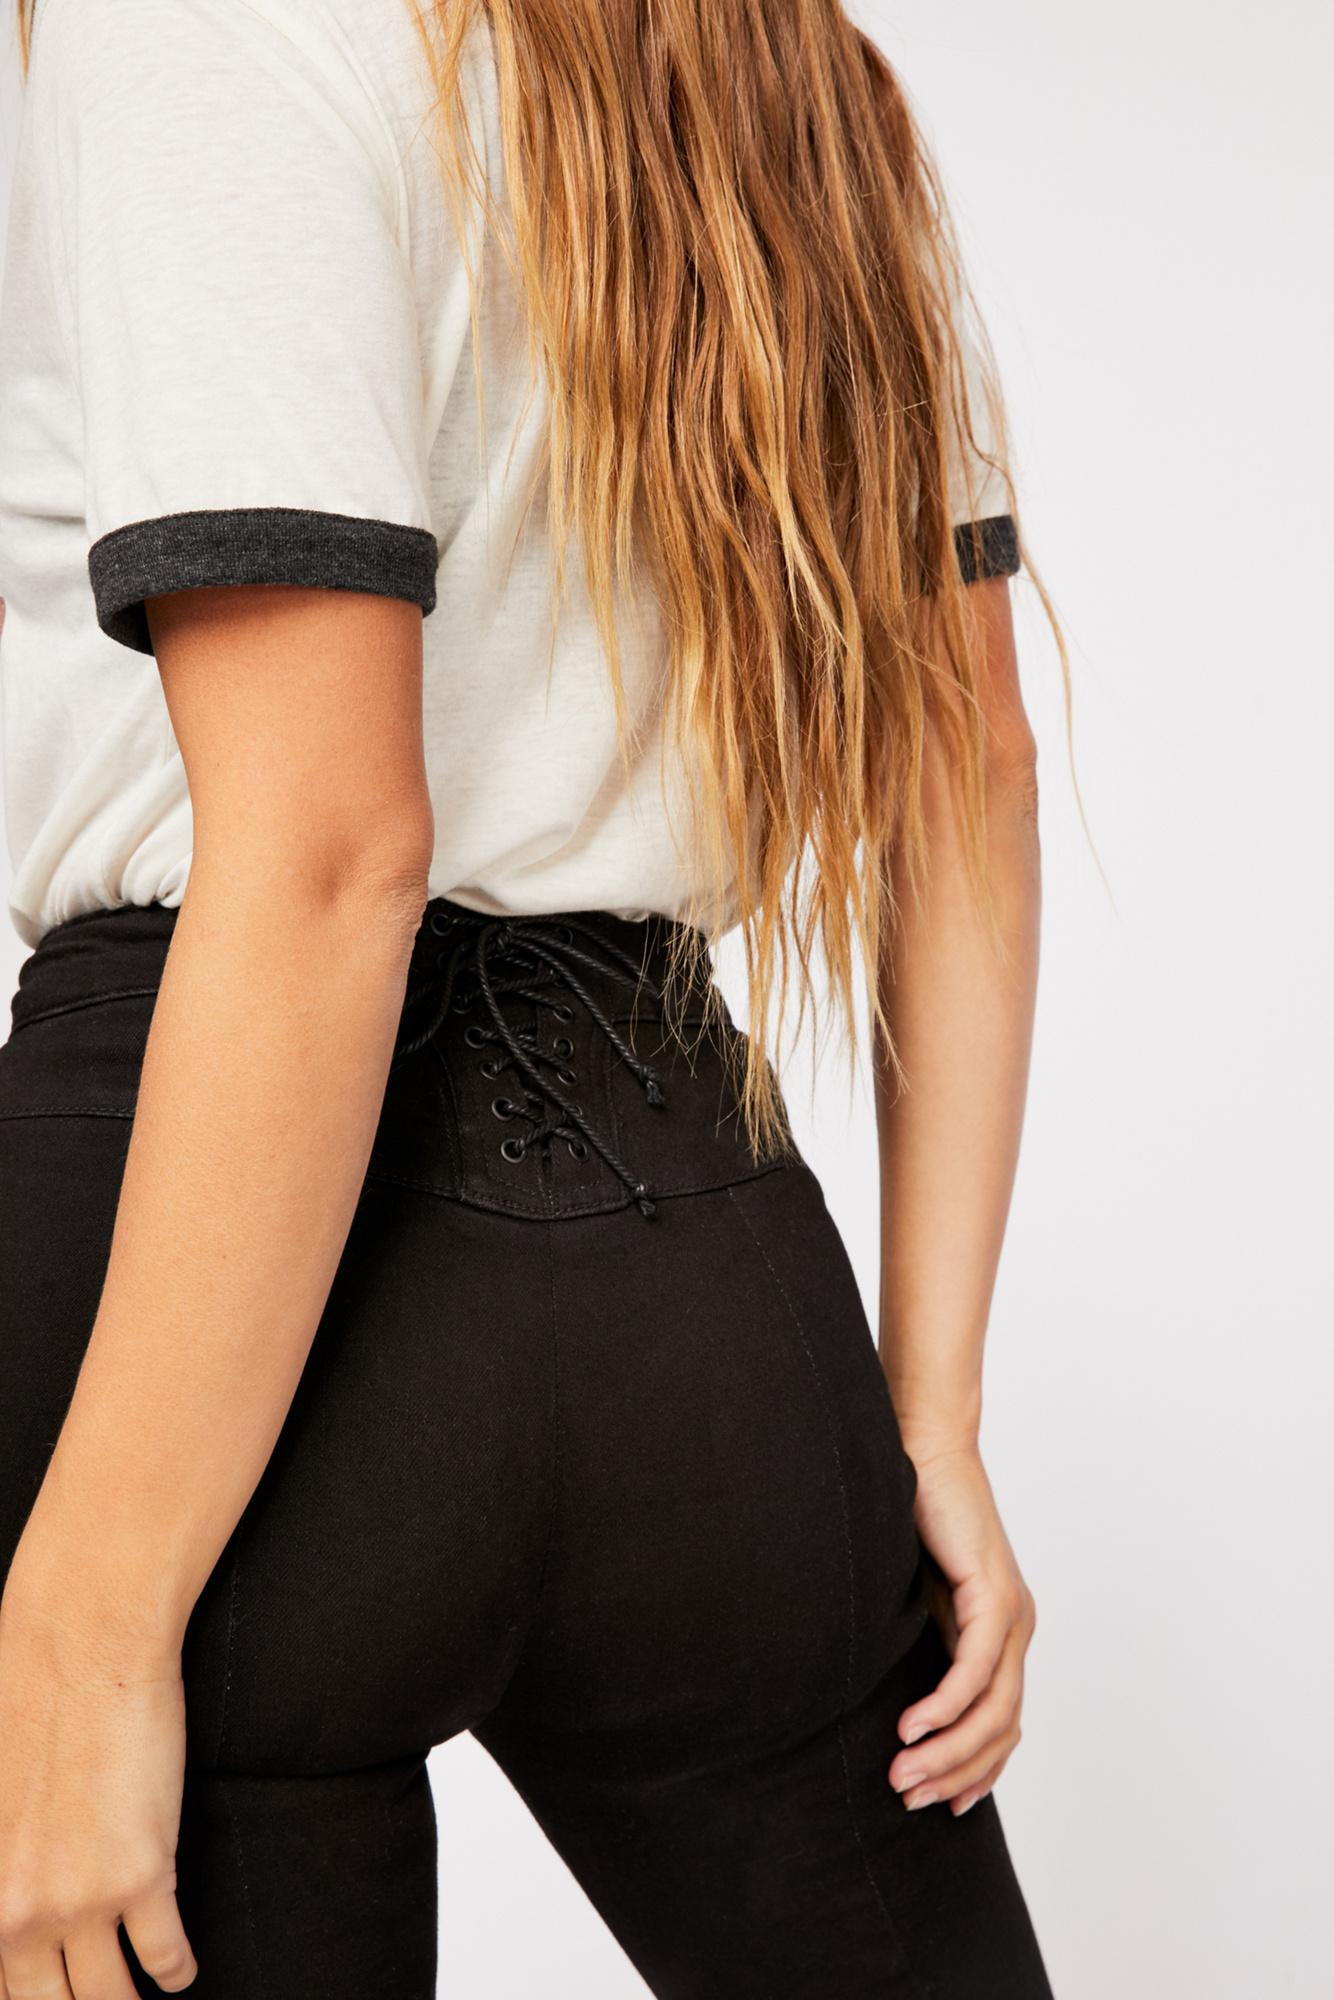 856a4704537e55 Free People Crvy Super High-rise Lace-up Flare Jeans in Black - Lyst